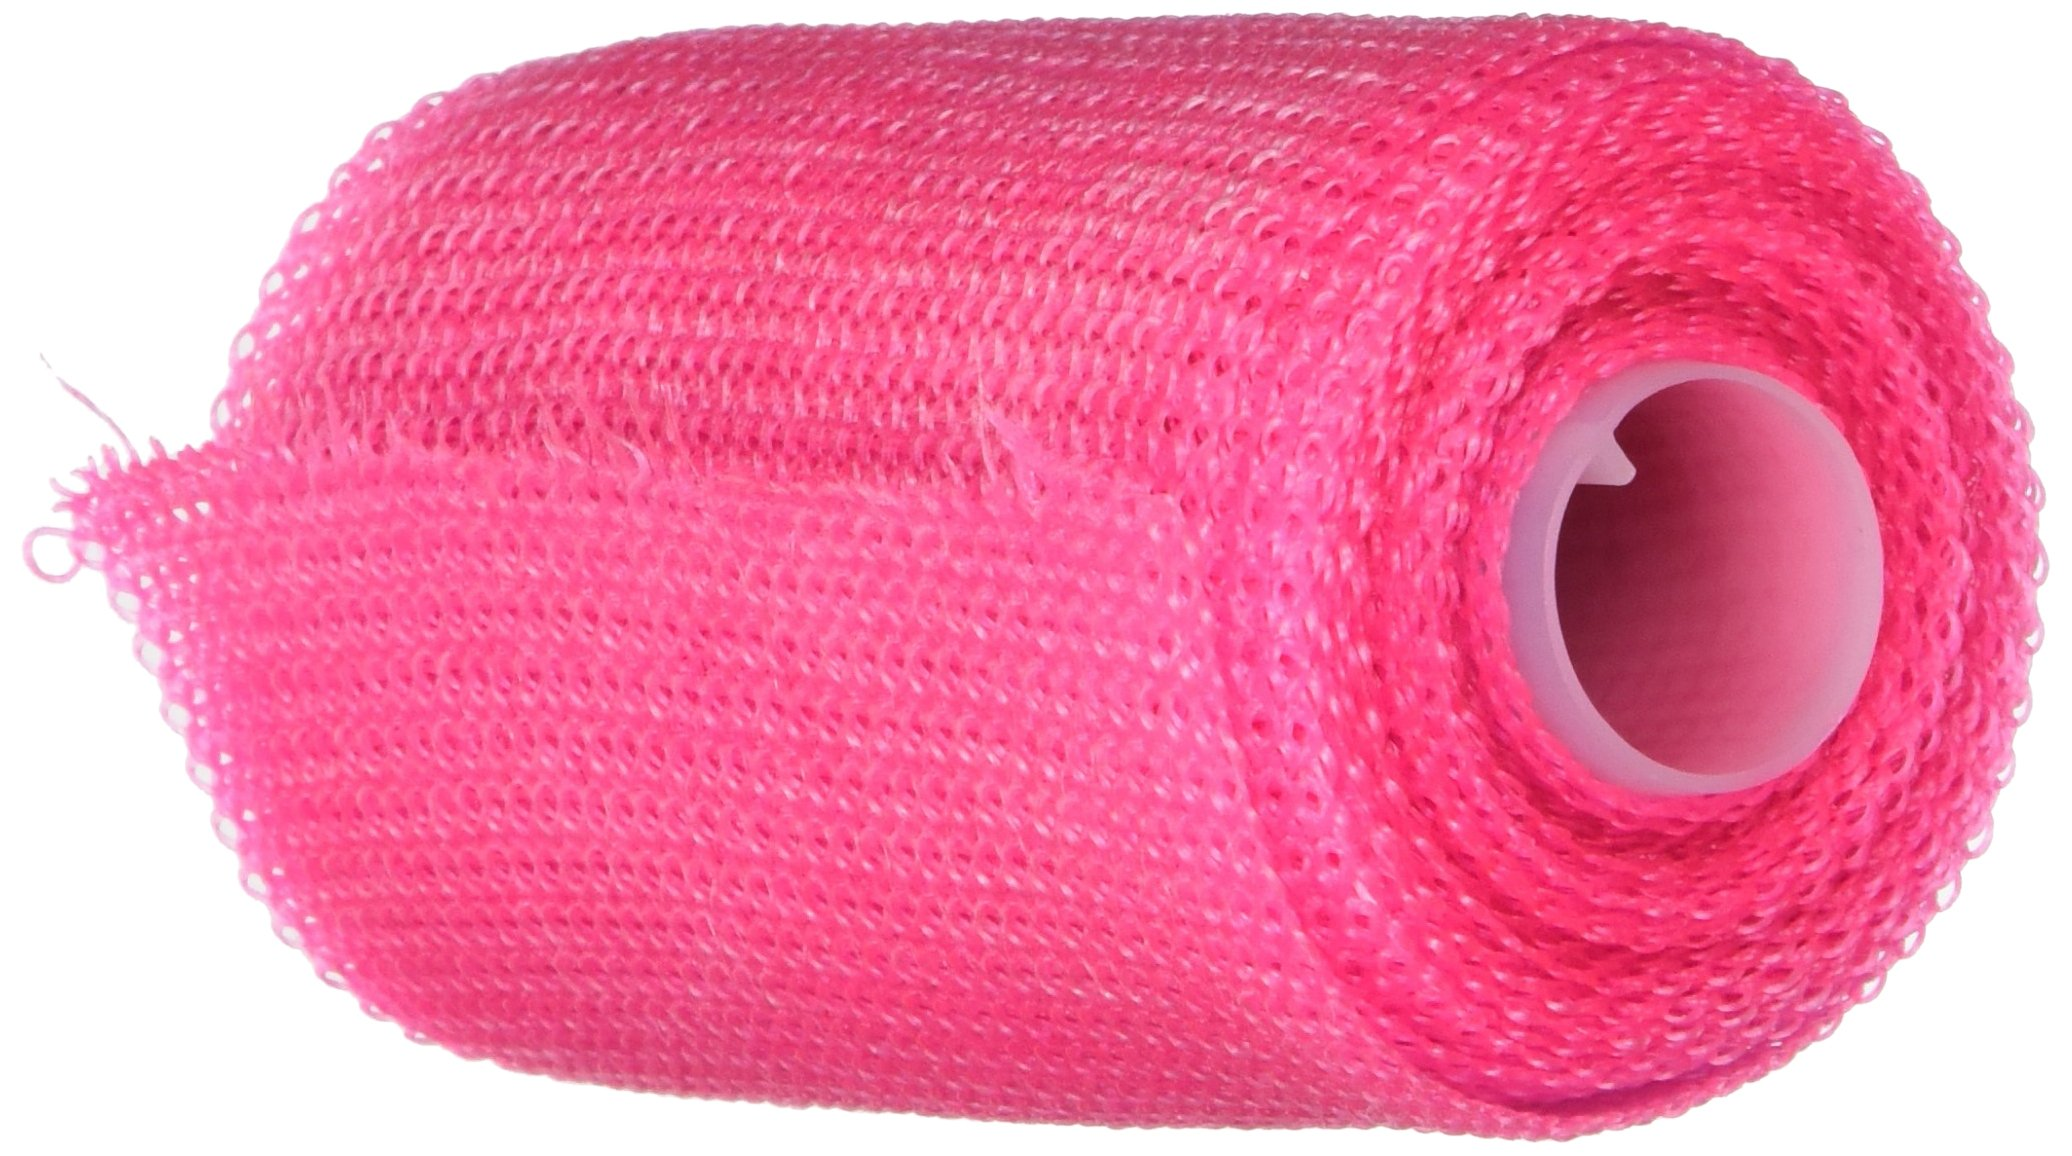 3M Health Care 82003X Plus Casting Tape, 3'' x 4 yd. Size, Bright Pink (Pack of 10) by 3M Health Care